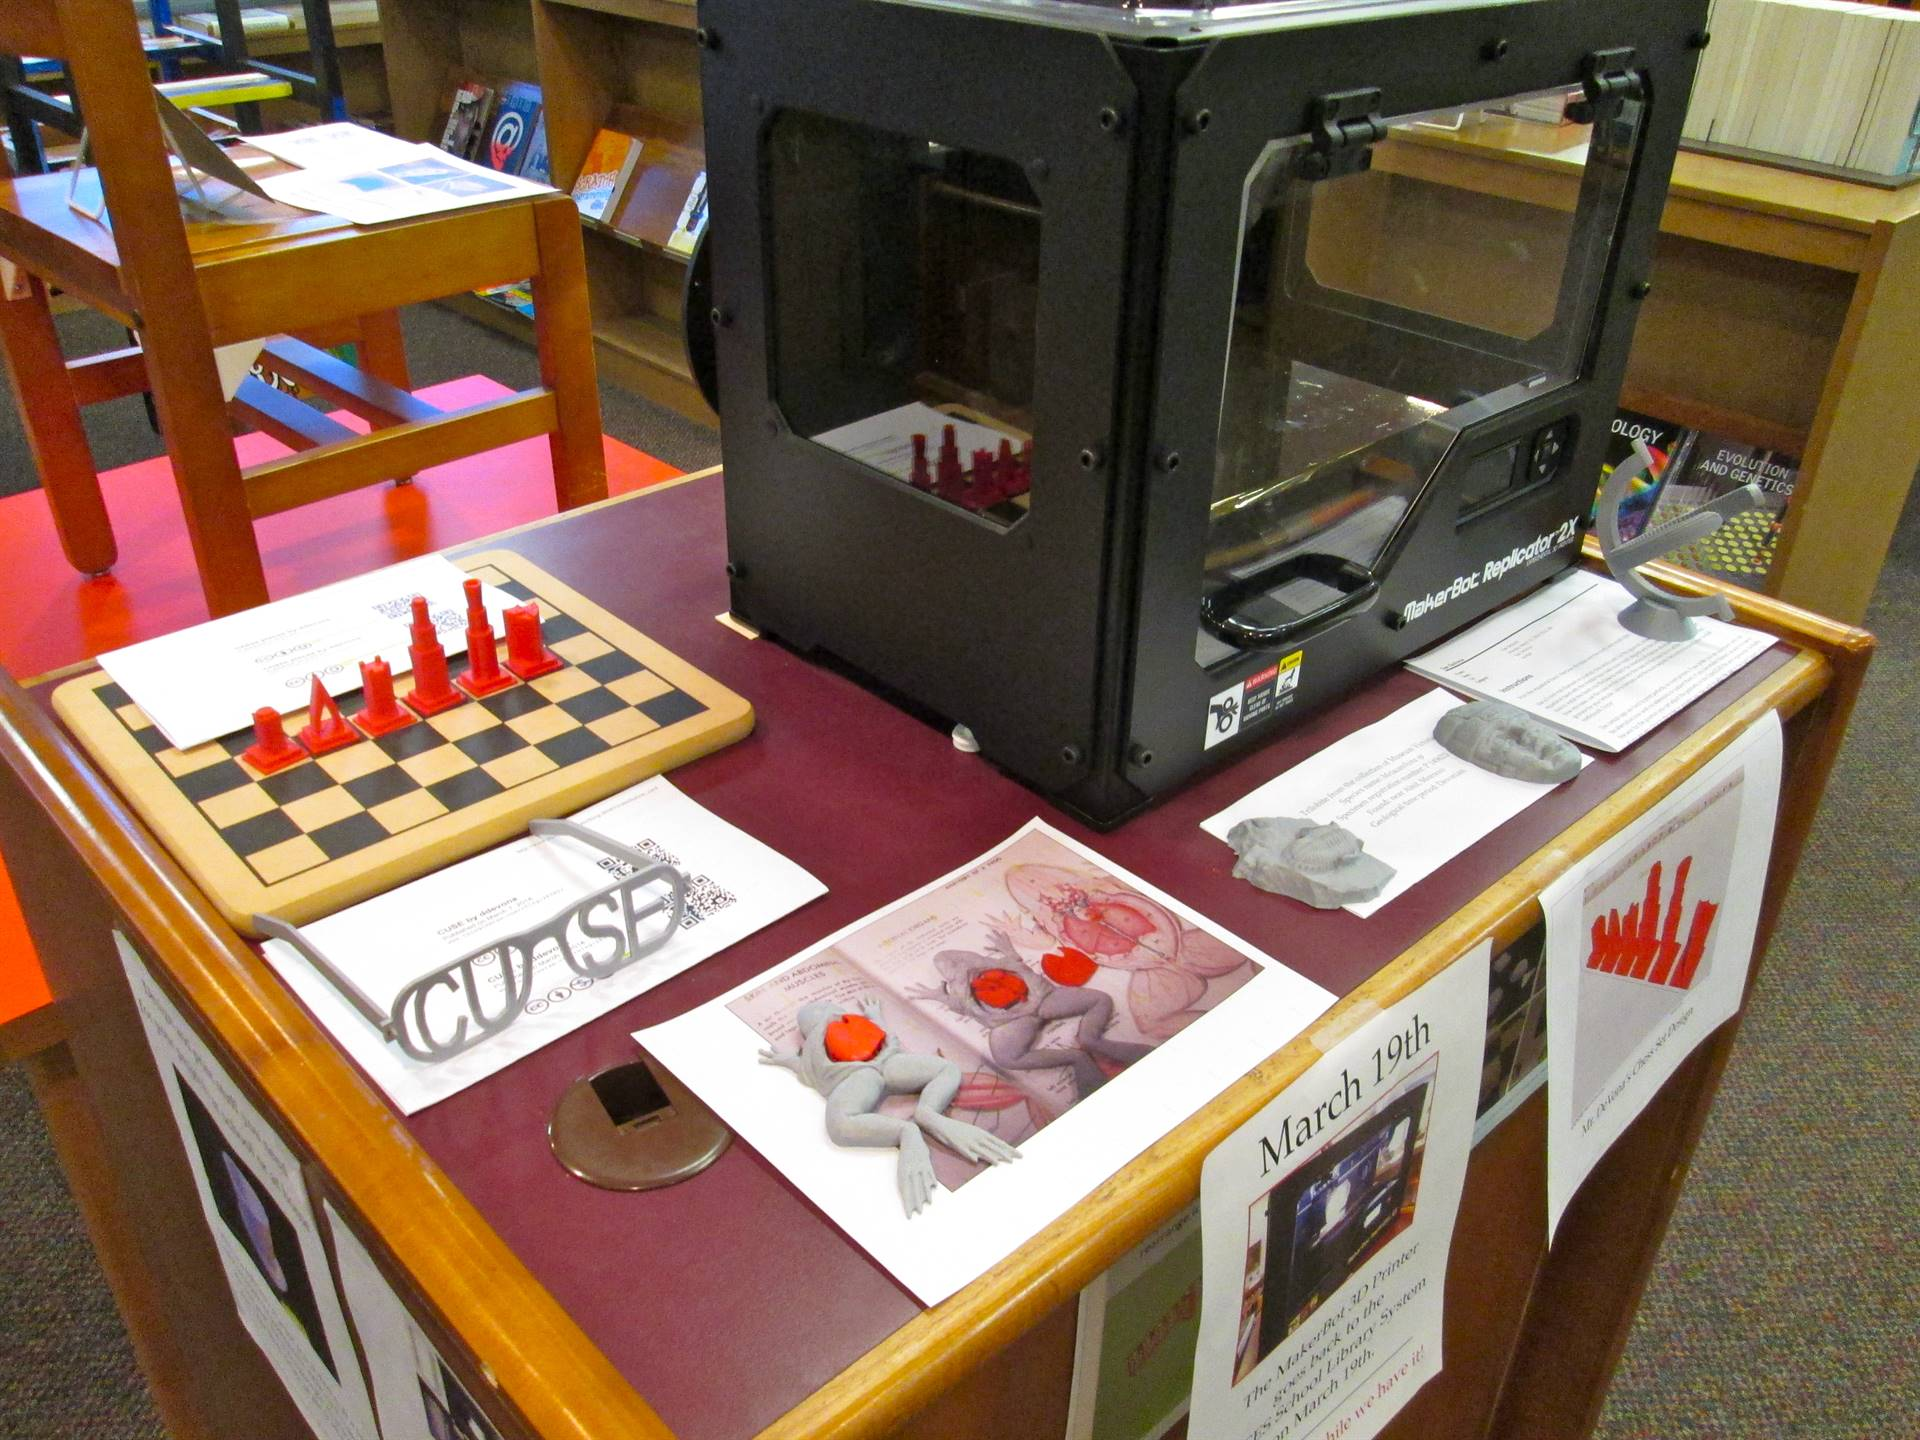 BOCES SLS 3D printer with Afton projects on display.